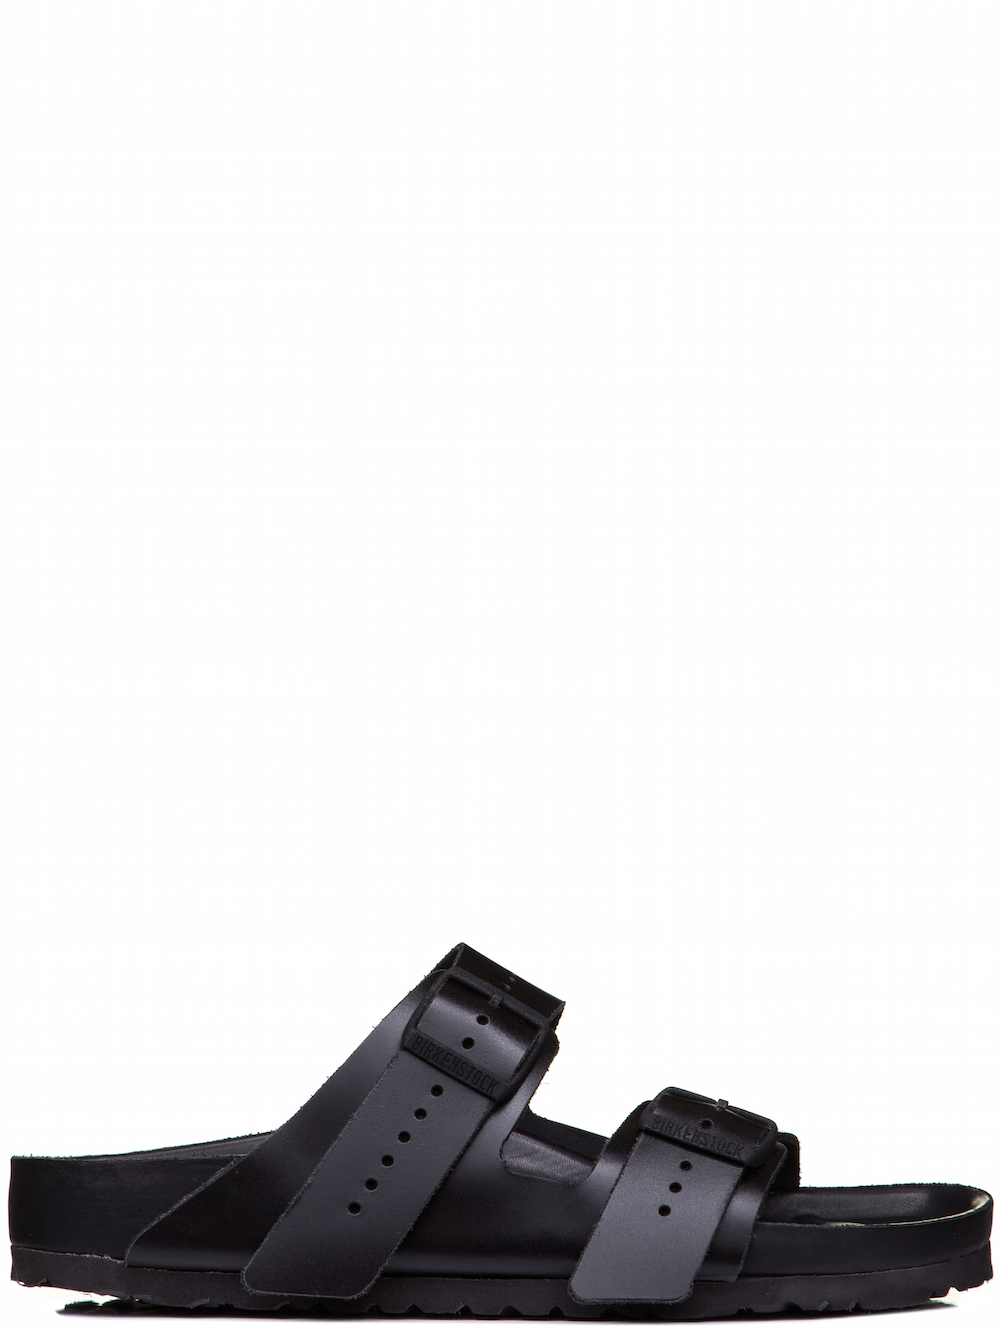 Rick Owens Arizona Leather Sandals Outlet Official Discount Pictures Qqvtq2XzSH